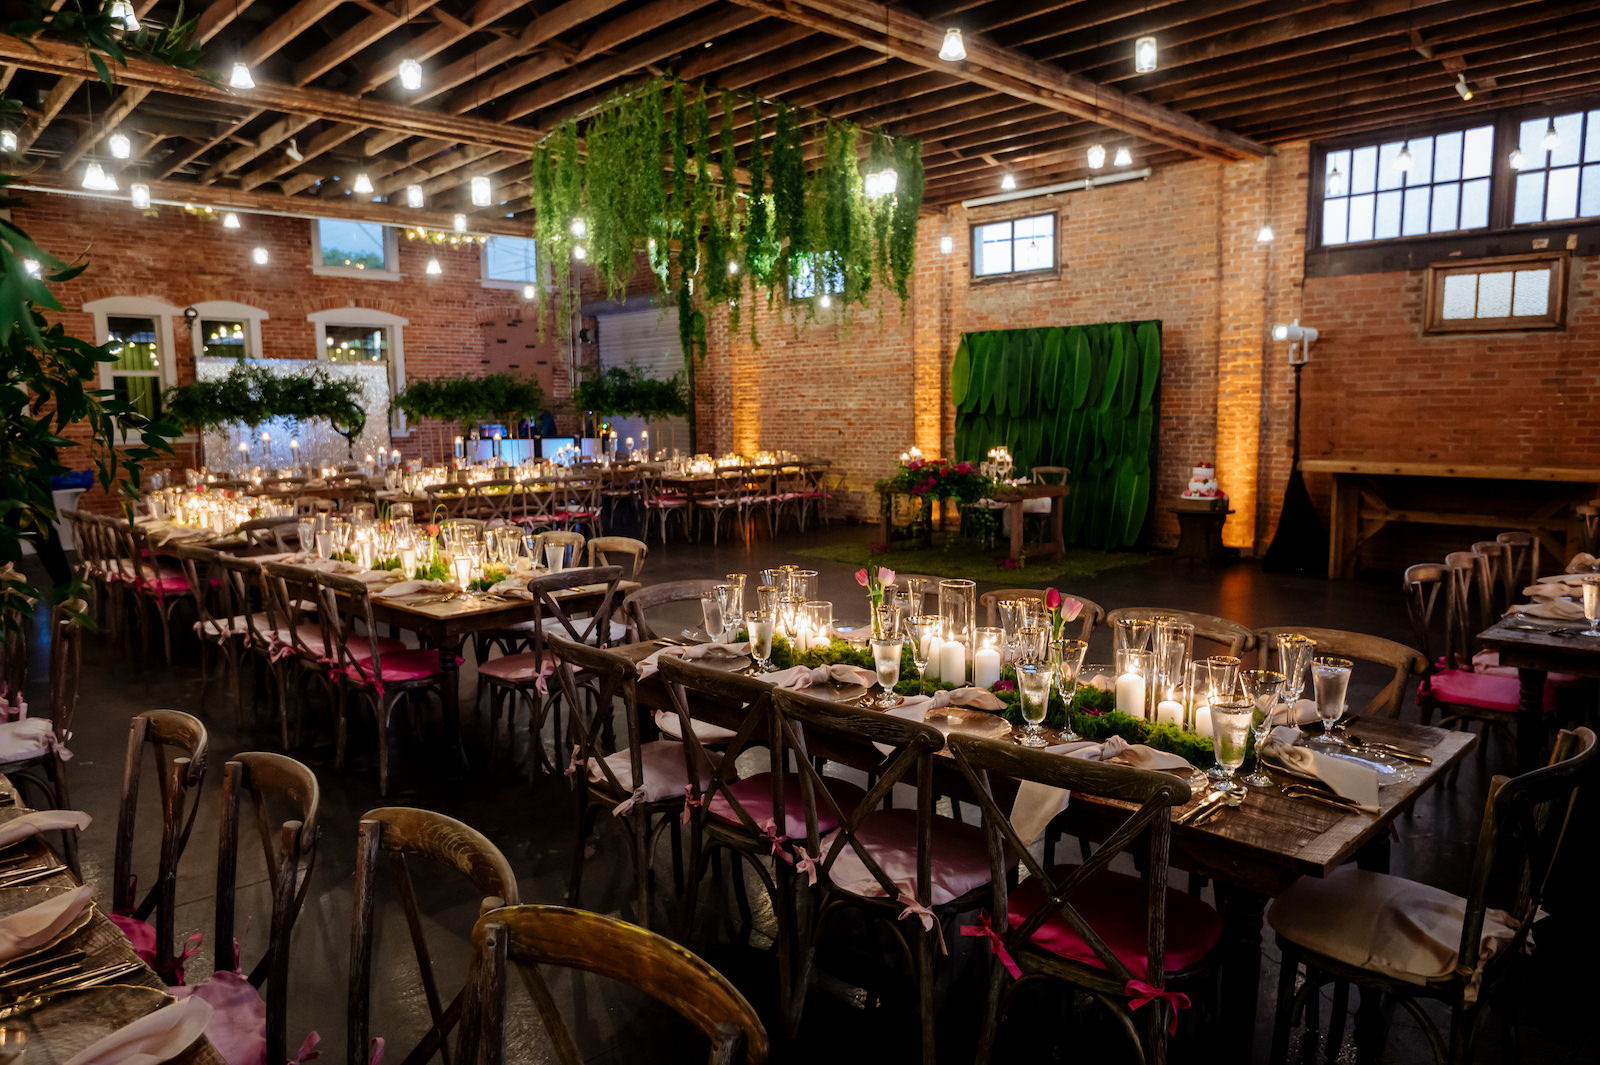 Modern Wedding Sweetheart Table Backdrop with Tropical Palm Leaves   Wood Cross Back Chairs with Ombre Pink Cushions in Historic Tampa Heights Venue with Brick Walls   Suspended Greenery Garland Ceiling Installment Wedding Floral Chandelier   Wood Farm Feasting Tables with Candles and Moss Wedding Reception Centerpieces   Kate Ryan Event Rentals